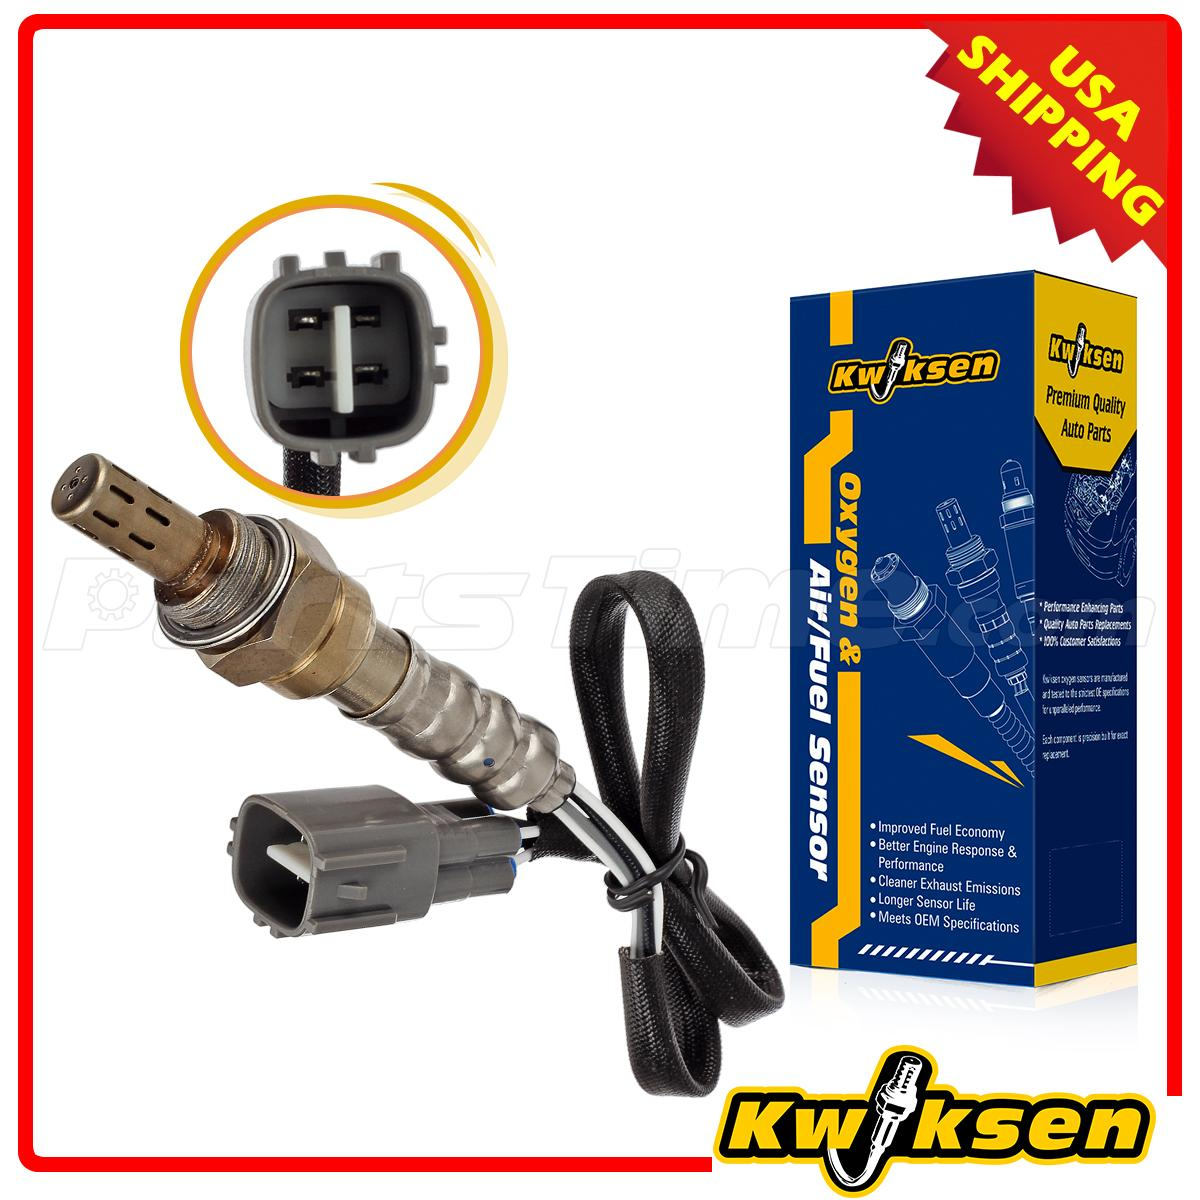 2005 Lexus Sc430 Oxygen Sensor 4 3l: Downstream Rear Oxygen Sensor For Toyota 4Runner 1999-2004